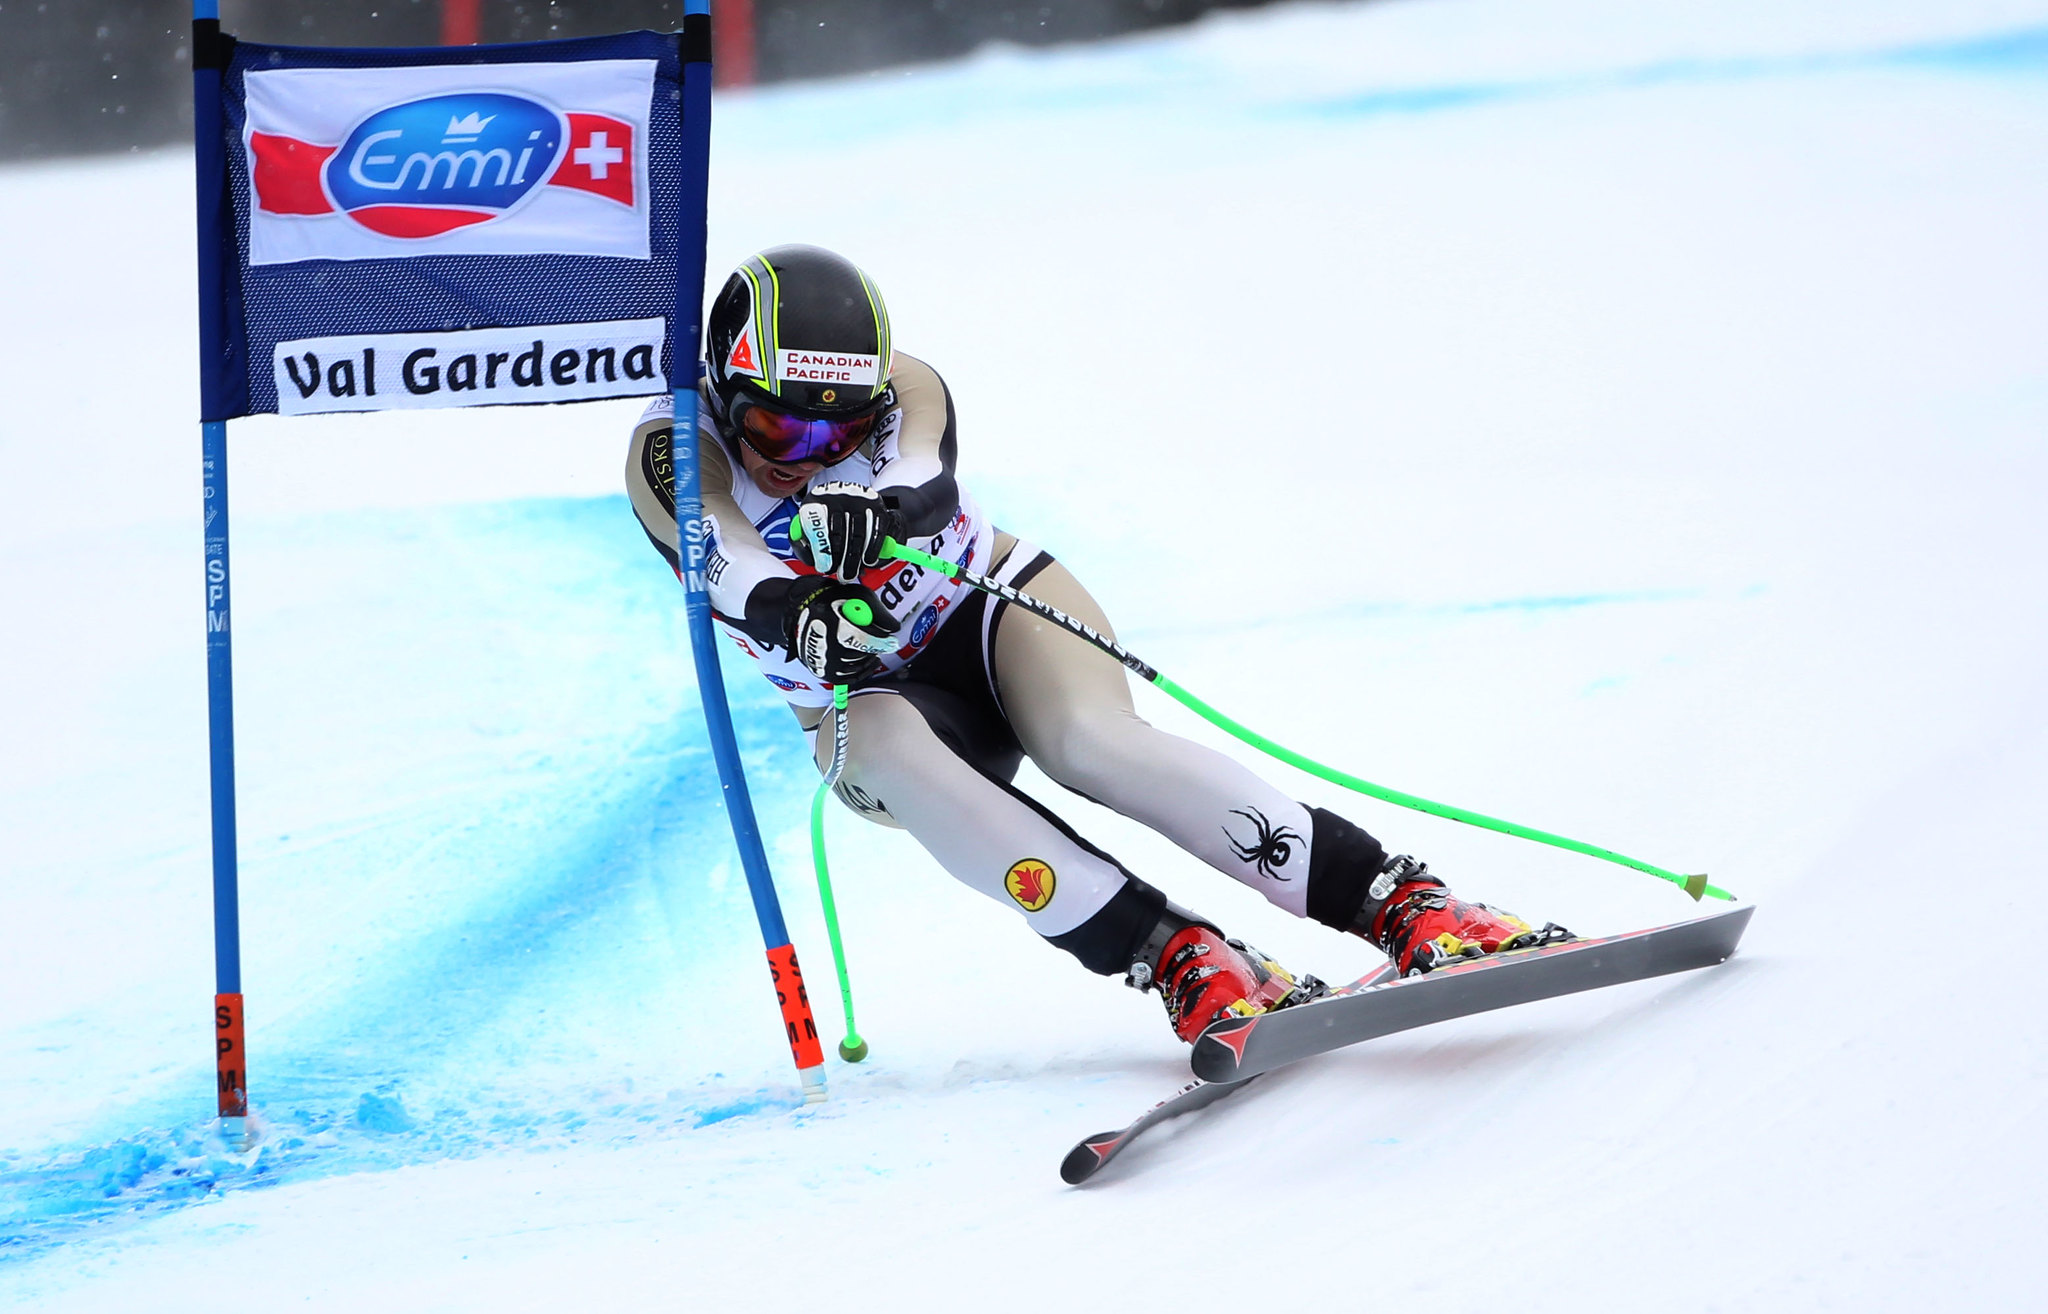 John Kucera in action during World Cup super-G in Val Gardena, Italy.